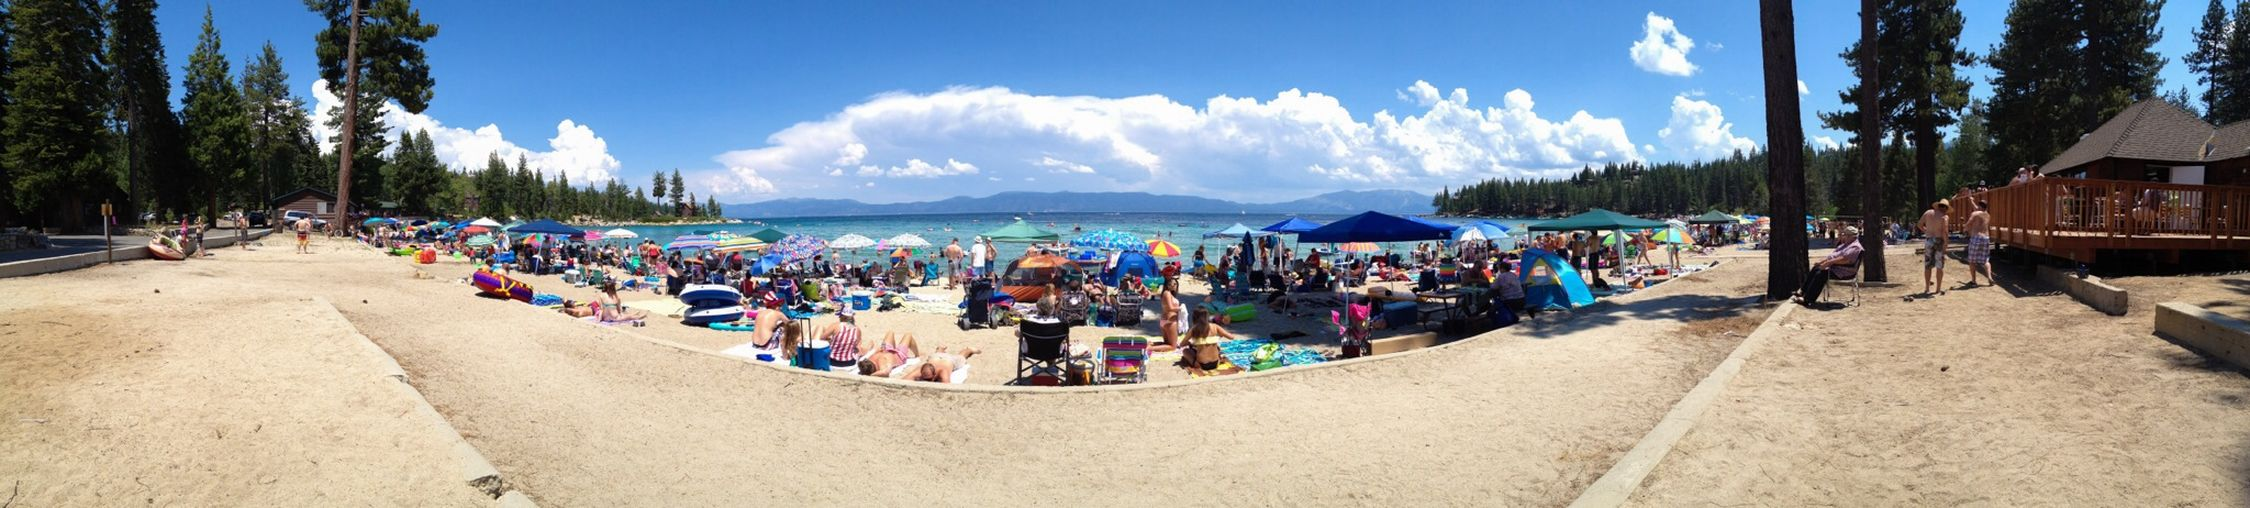 4th Of July at Meeks Bay on Lake Tahoe in 2013. Perfect Weather that day.